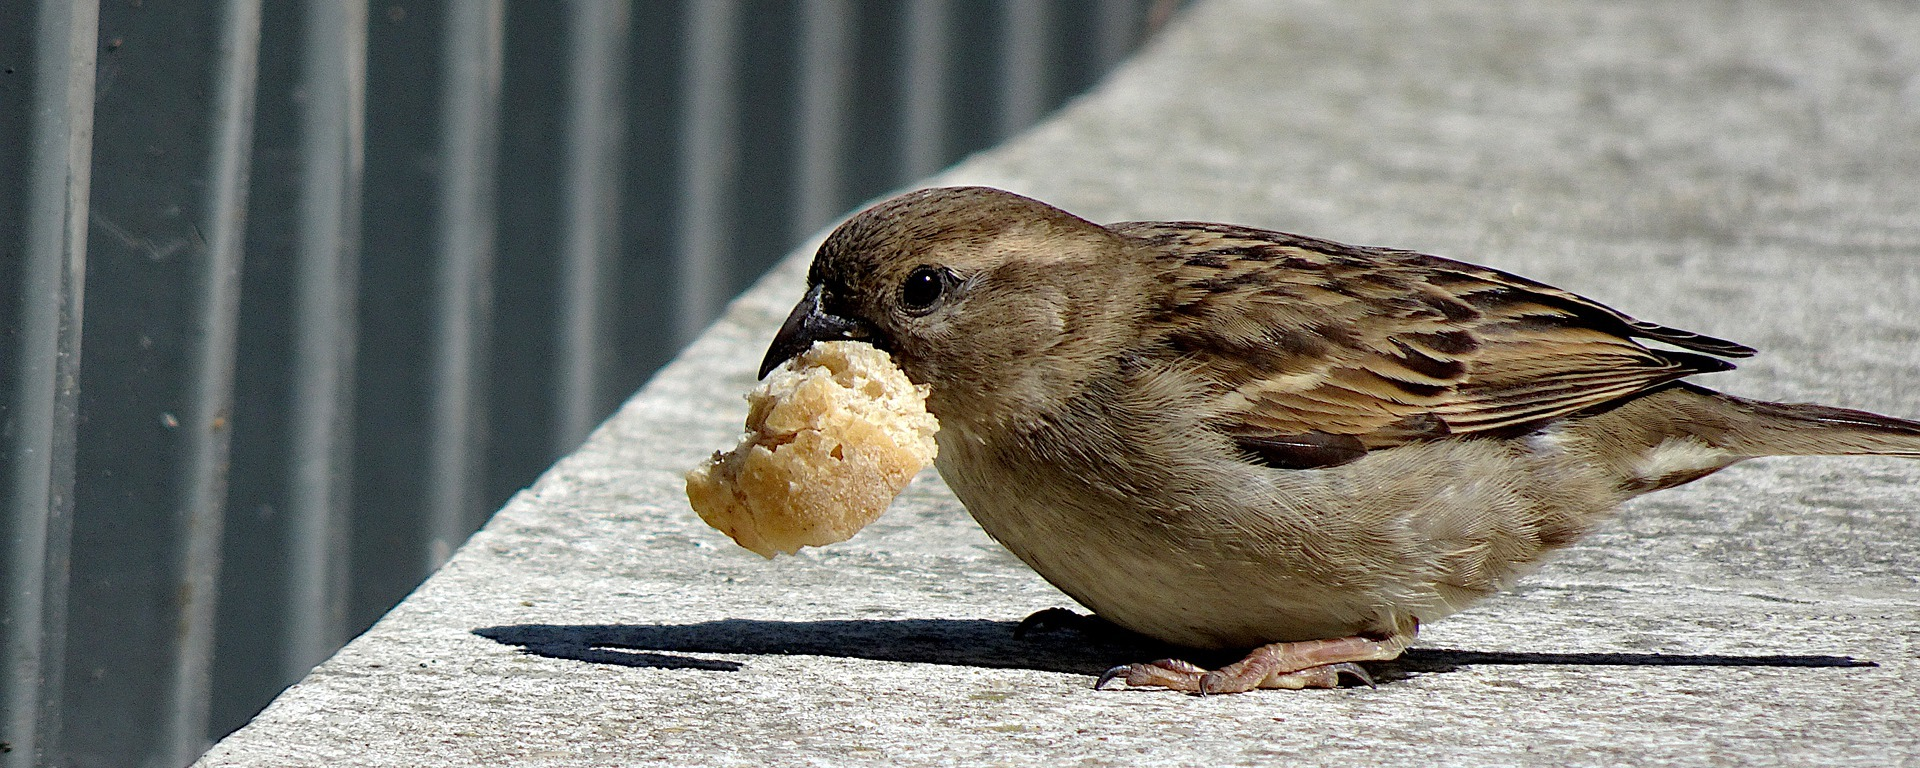 sparrow,birds,animals,plumage,beak,cute,eat,catch,bread, DONCHARISMA